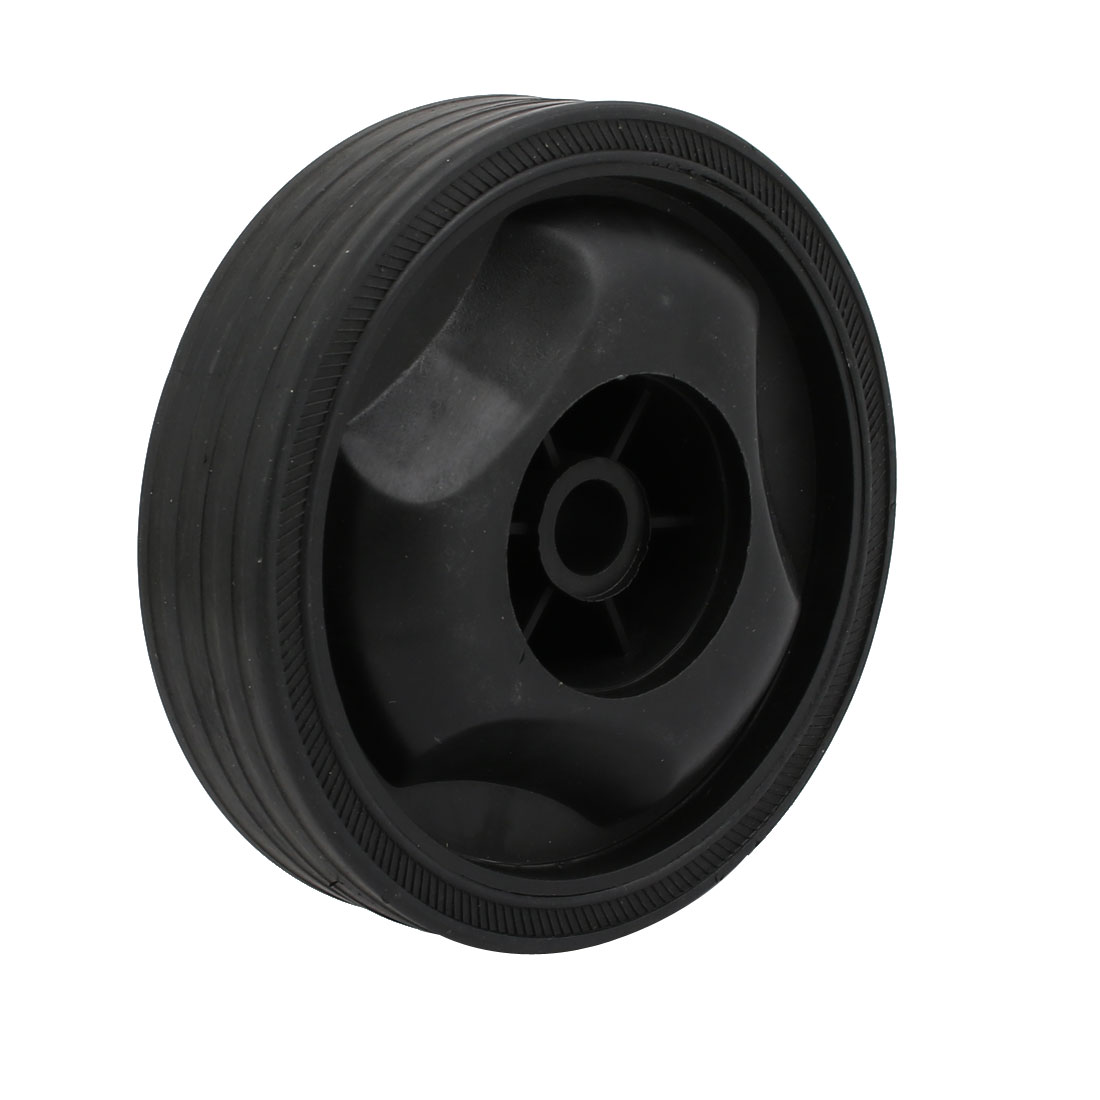 115mm Dia Plastic Replacement Parts Wheel Casters Black for Air Compressor